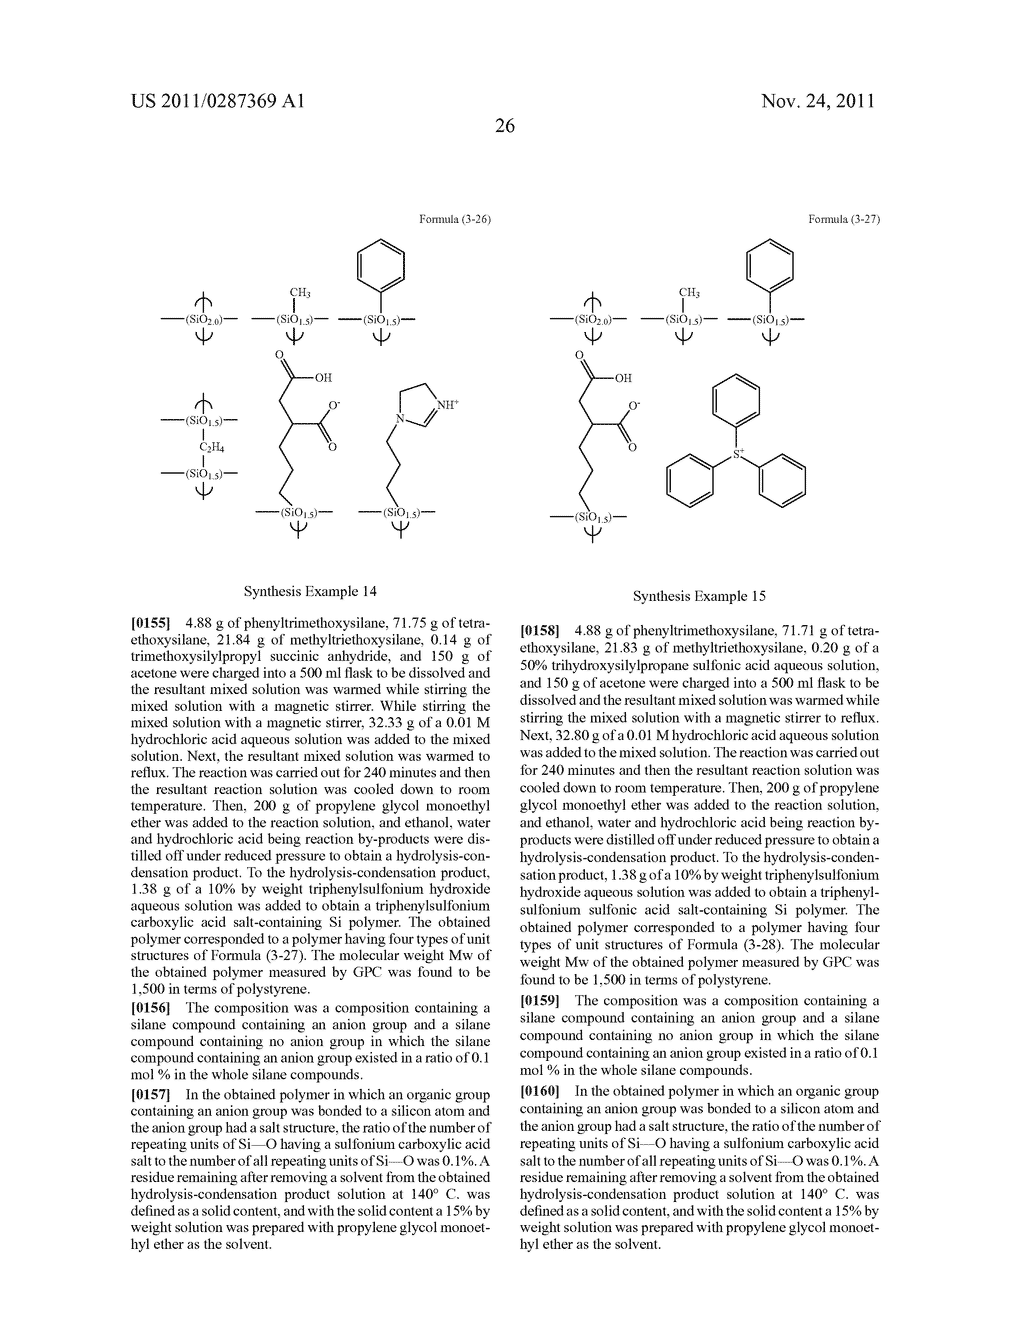 RESIST UNDERLAYER FILM FORMING COMPOSITION CONTAINING SILICON HAVING ANION     GROUP - diagram, schematic, and image 27